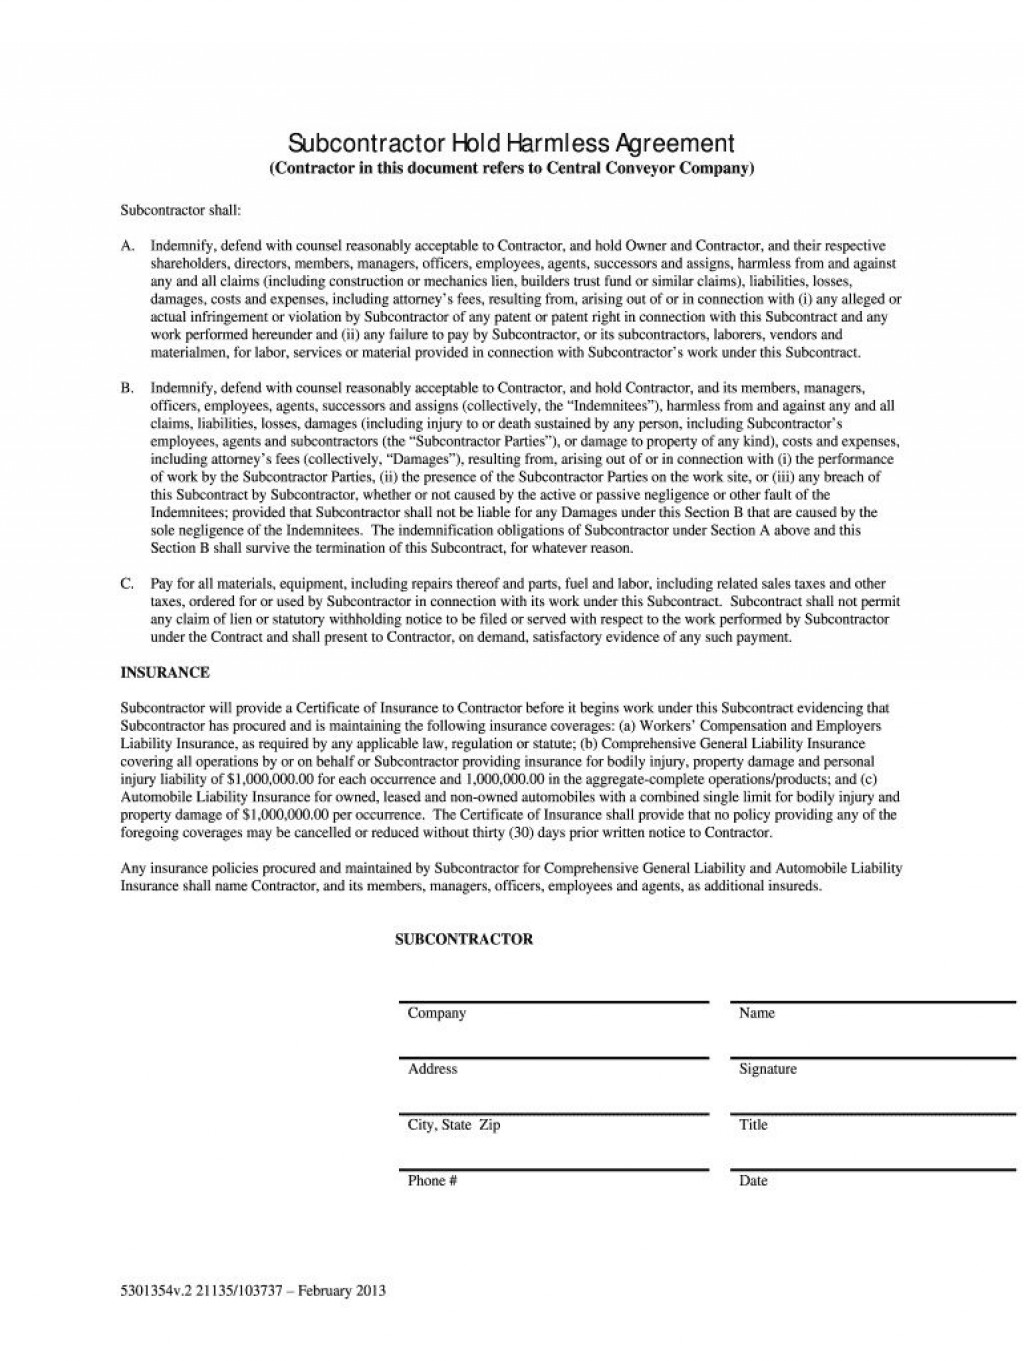 008 Staggering Hold Harmles Agreement Template Design  Canada Word Free DownloadLarge